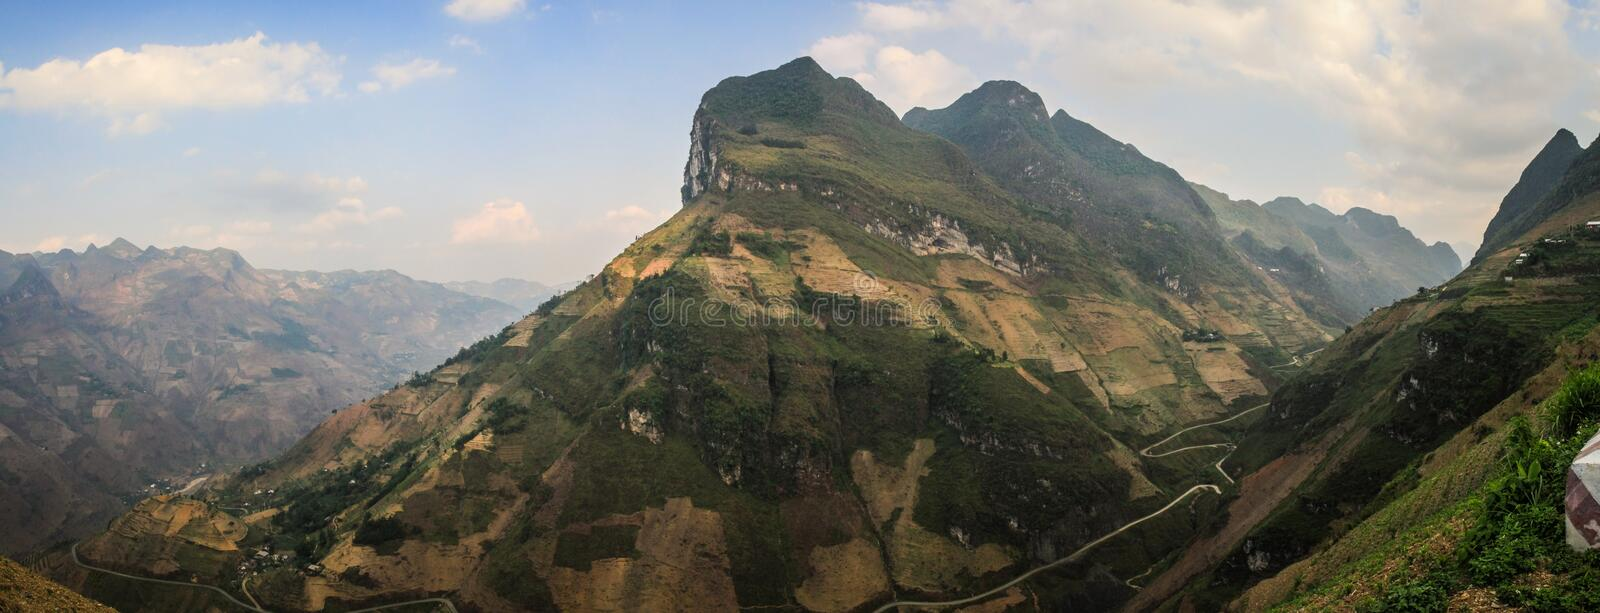 Panoramic view of the majestic karst mountains around Meo Vac, Ha Giang Province, Vietnam. Meo Vac is a small but charming district capital hemmed in by steep royalty free stock photos